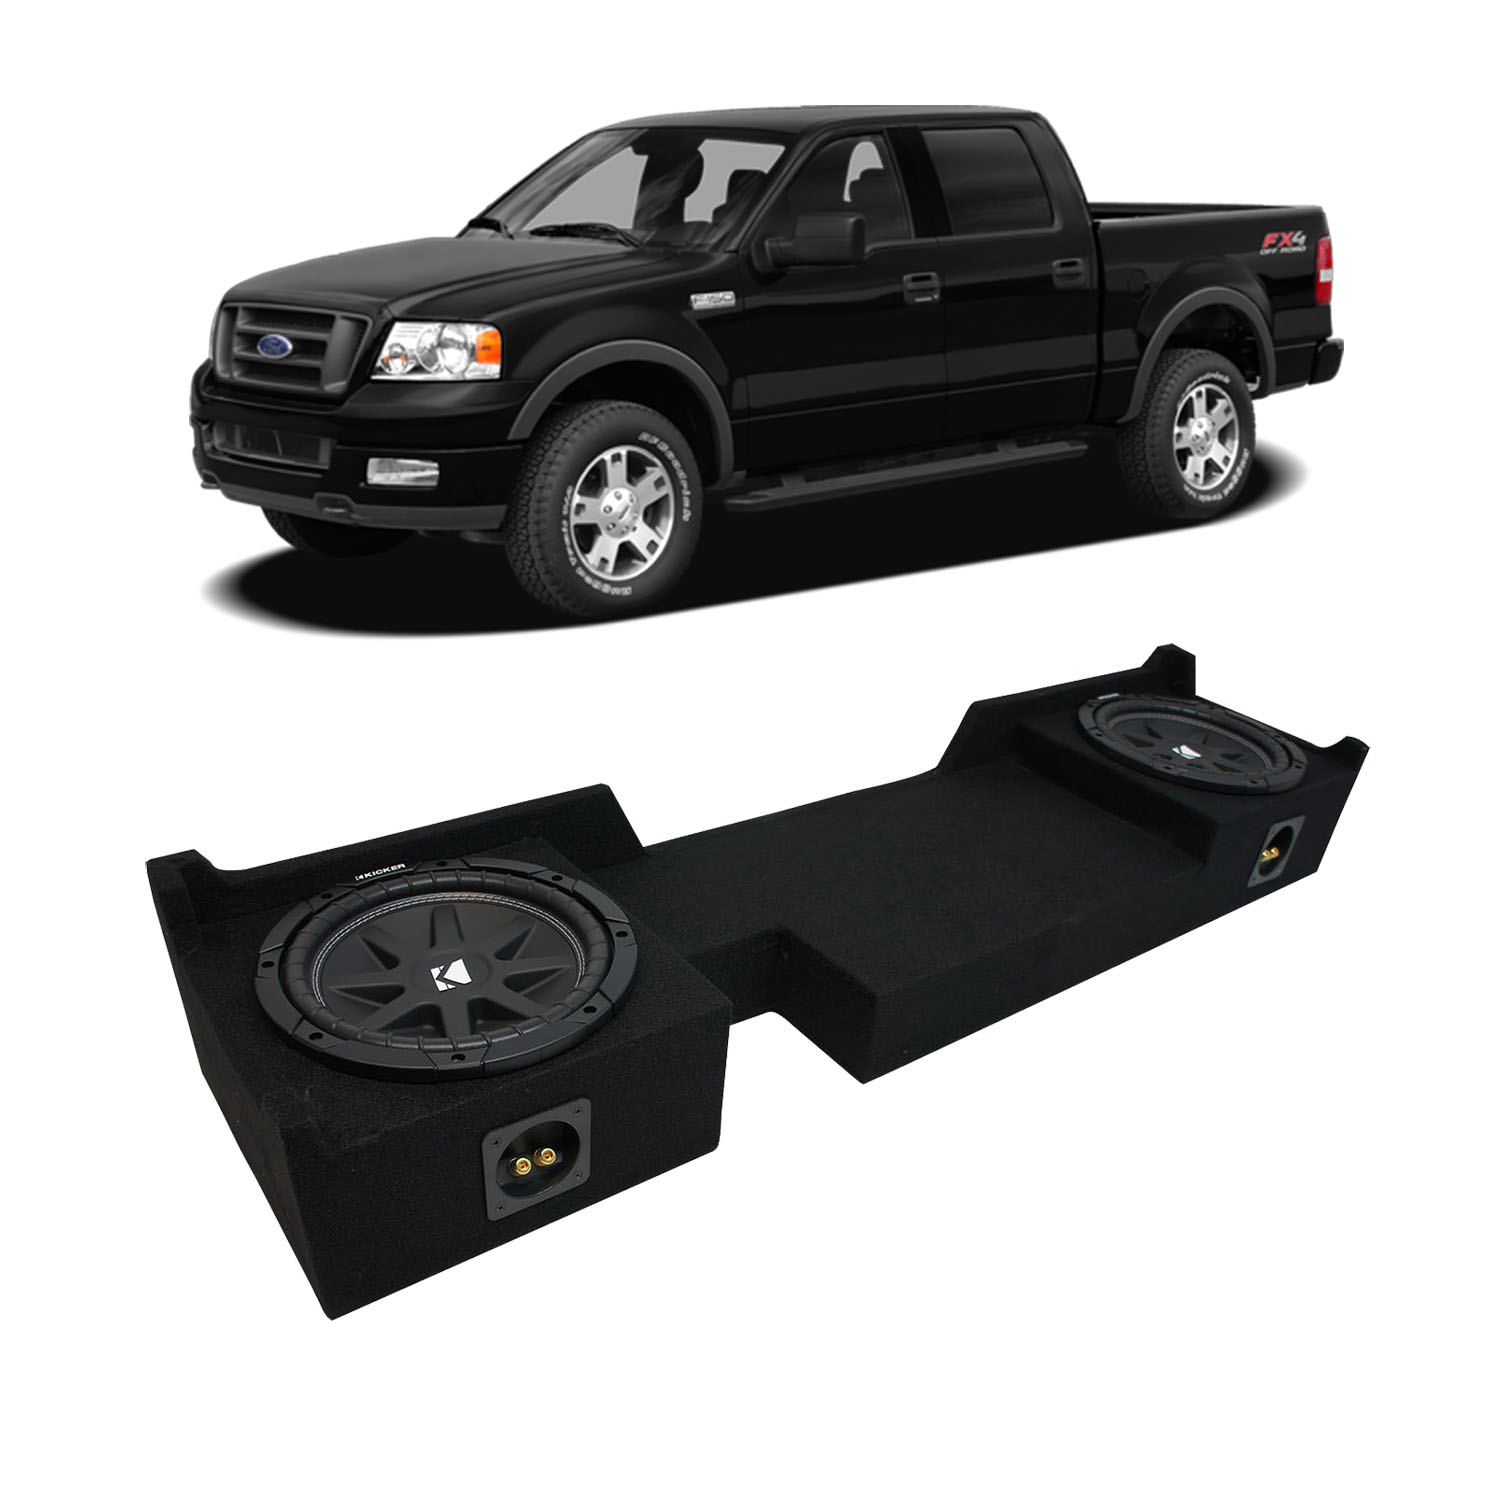 "2004-2008 Ford F-150 Super Crew Truck Kicker Comp C10 Dual 10"" Sub Box 2 Ohm"